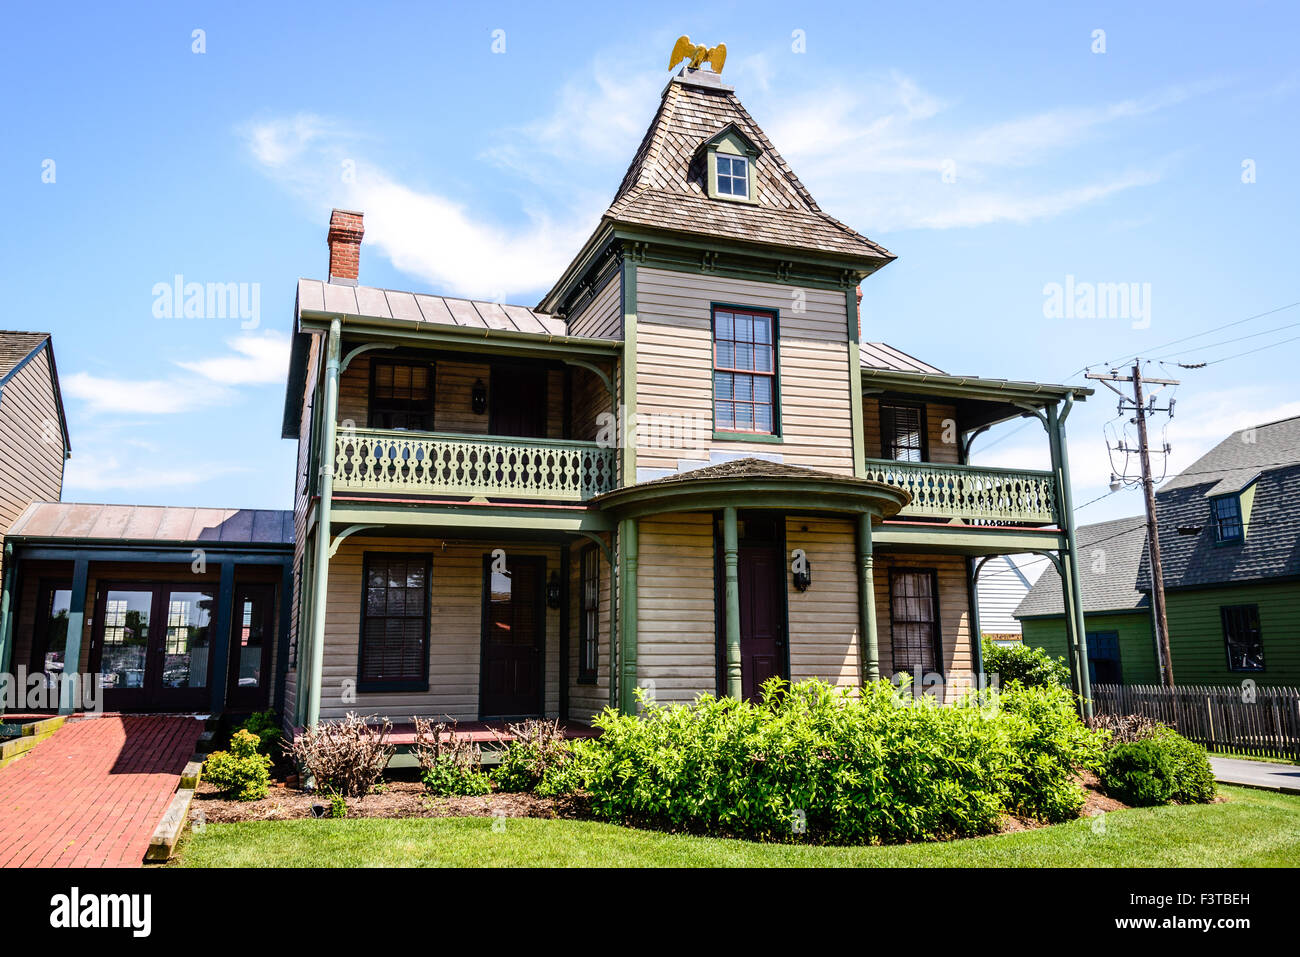 Eagle House, Navy Point Historic Houses, Chesapeake Bay Maritime Museum, St. Michaels, Maryland Stock Photo